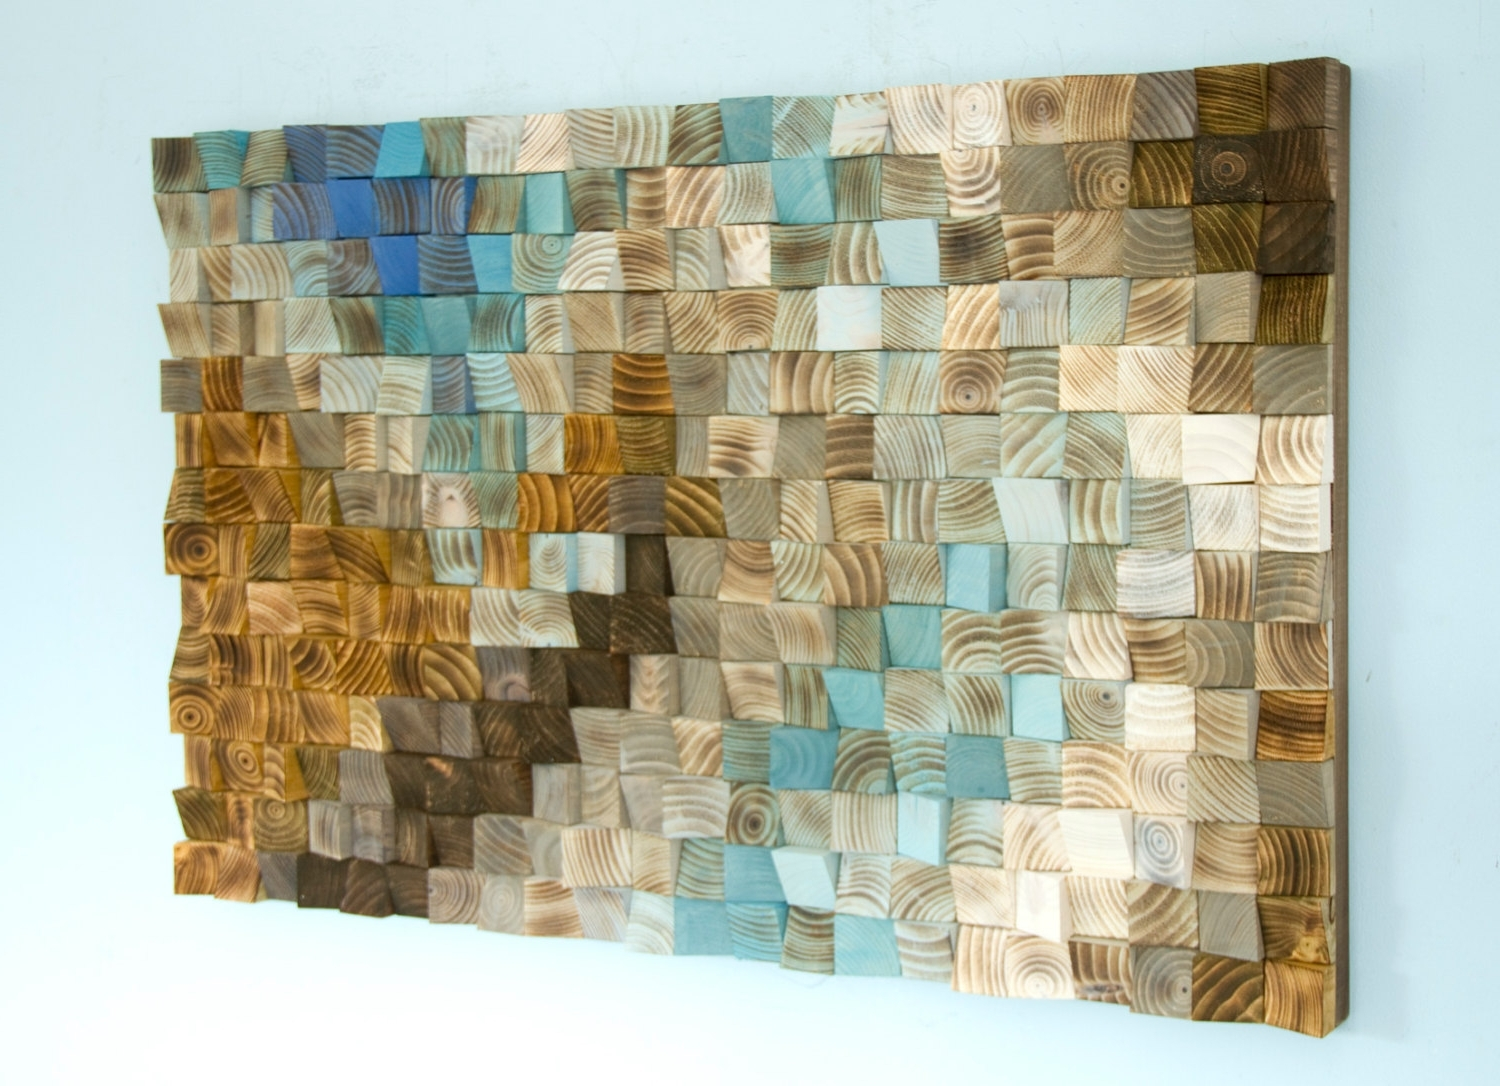 Mosaic Wall Art Throughout Latest Mosaic Wall Art Elegant Wood Office Decor Geometric 24 X 36 Within (View 4 of 15)